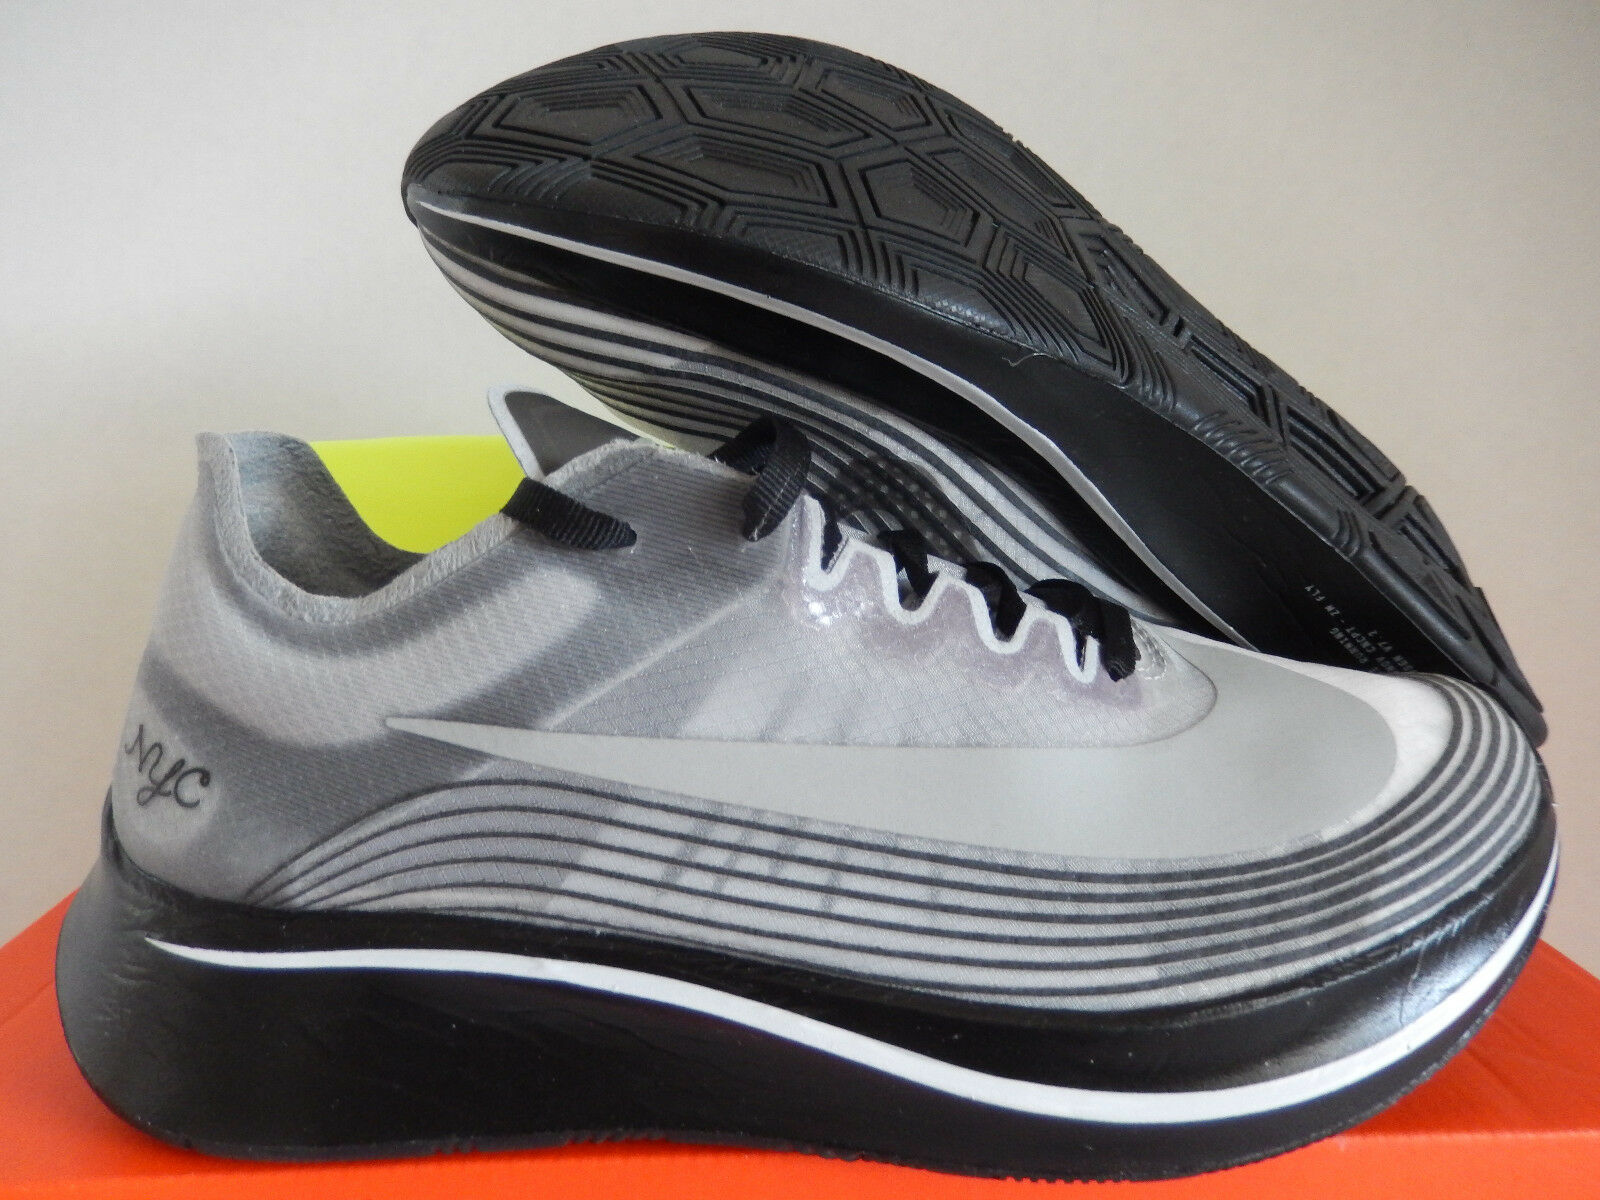 MENS NIKE NIKELAB ZOOM FLY NYC BLACK-BLACK-WHITE SZ 4 [AH5088-001]